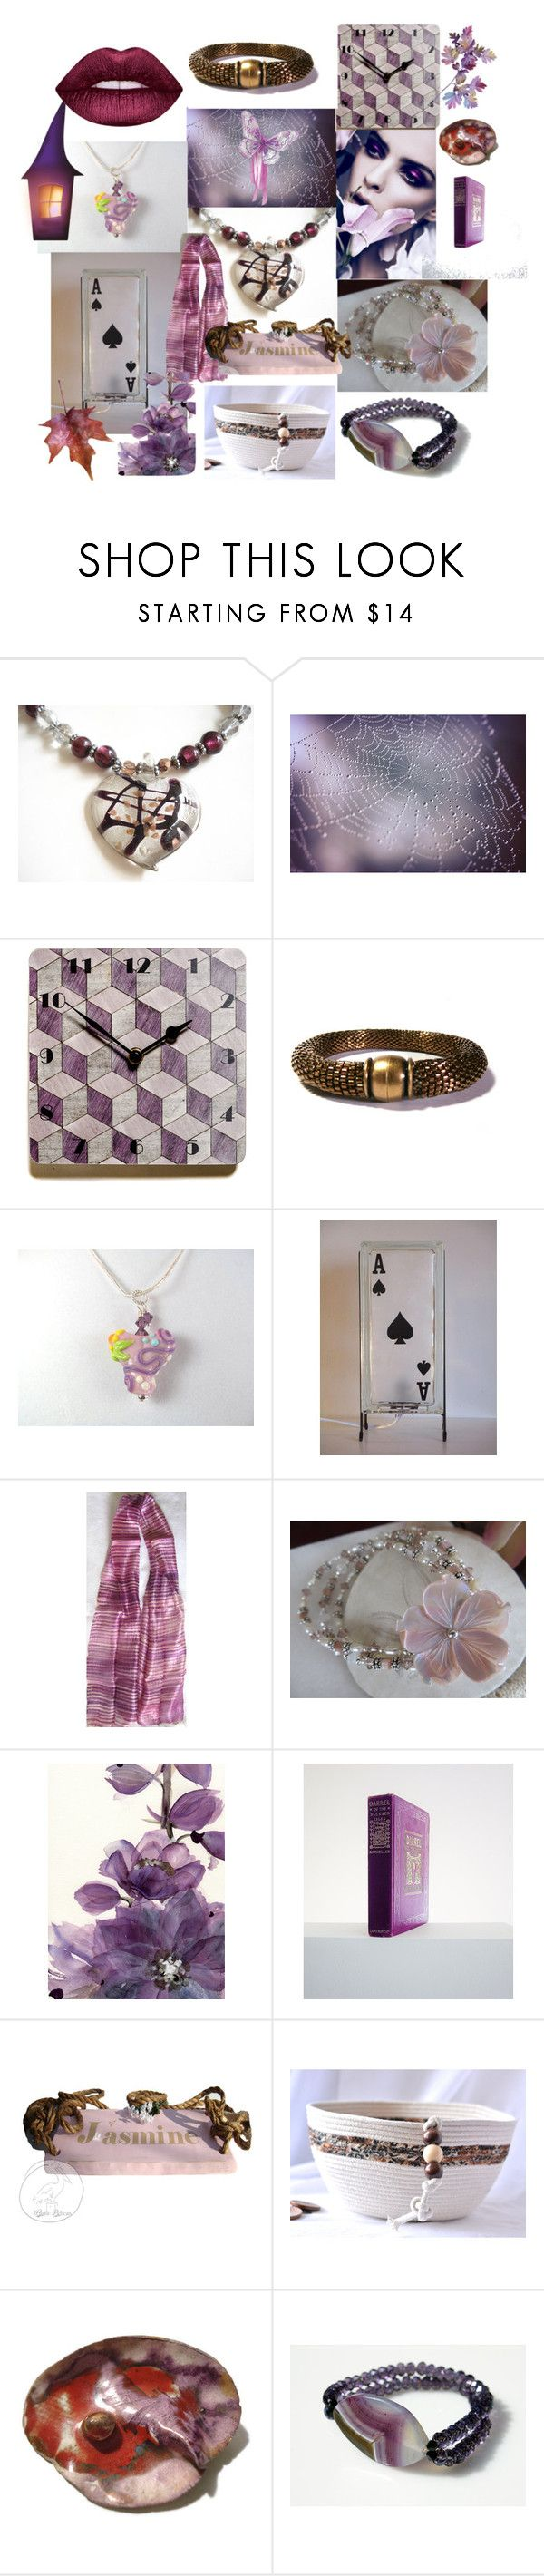 """""""Purple/Plum"""" by anna-recycle ❤ liked on Polyvore featuring Bibi, Lime Crime, modern, rustic and vintage"""